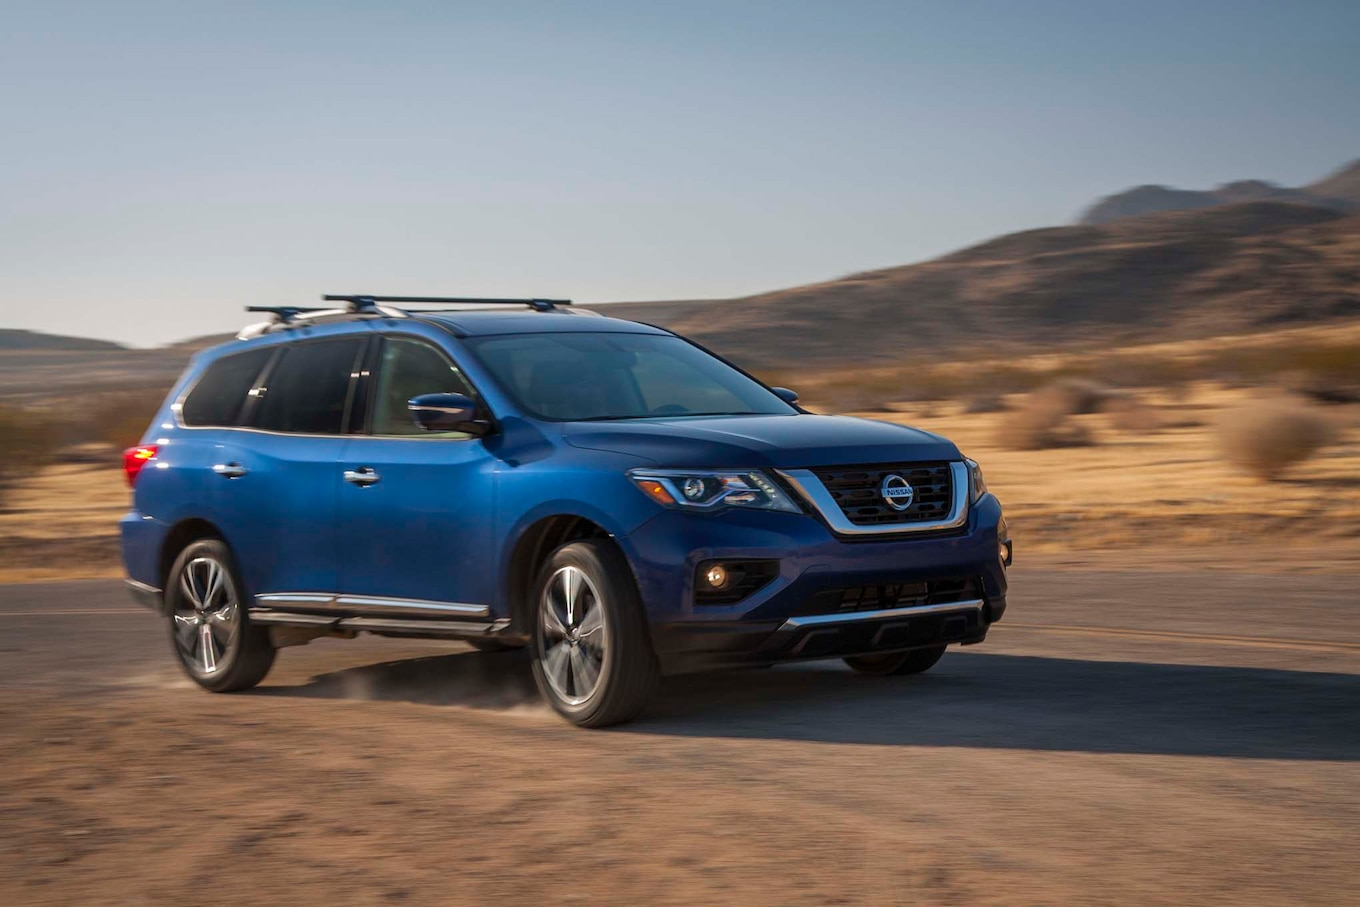 2017 Nissan Pathfinder front three quarter in motion 16